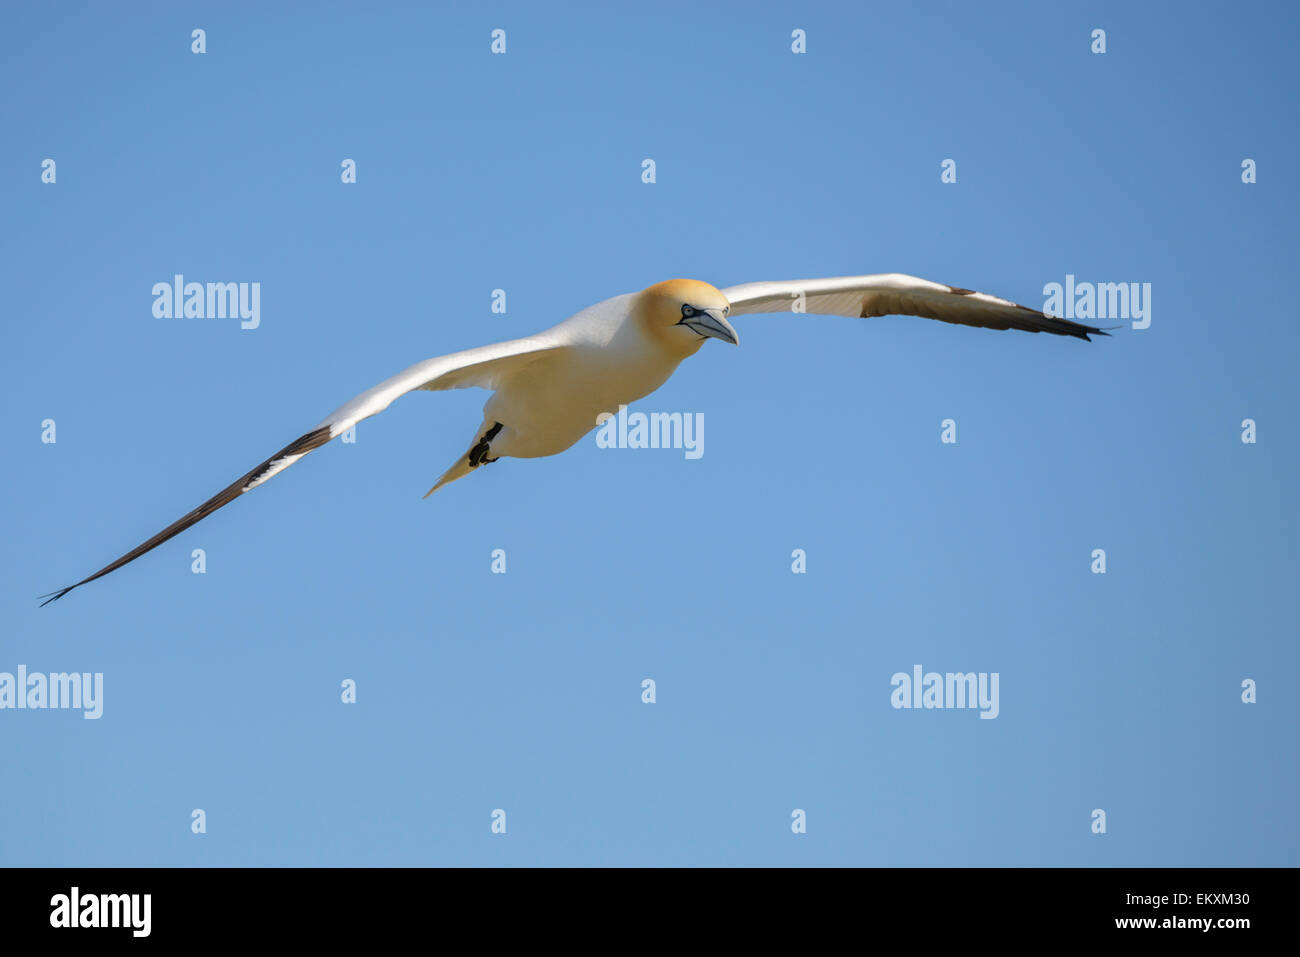 One a northern gannet soaring against a clear blue sky. Horizontal format with copyspace. - Stock Image